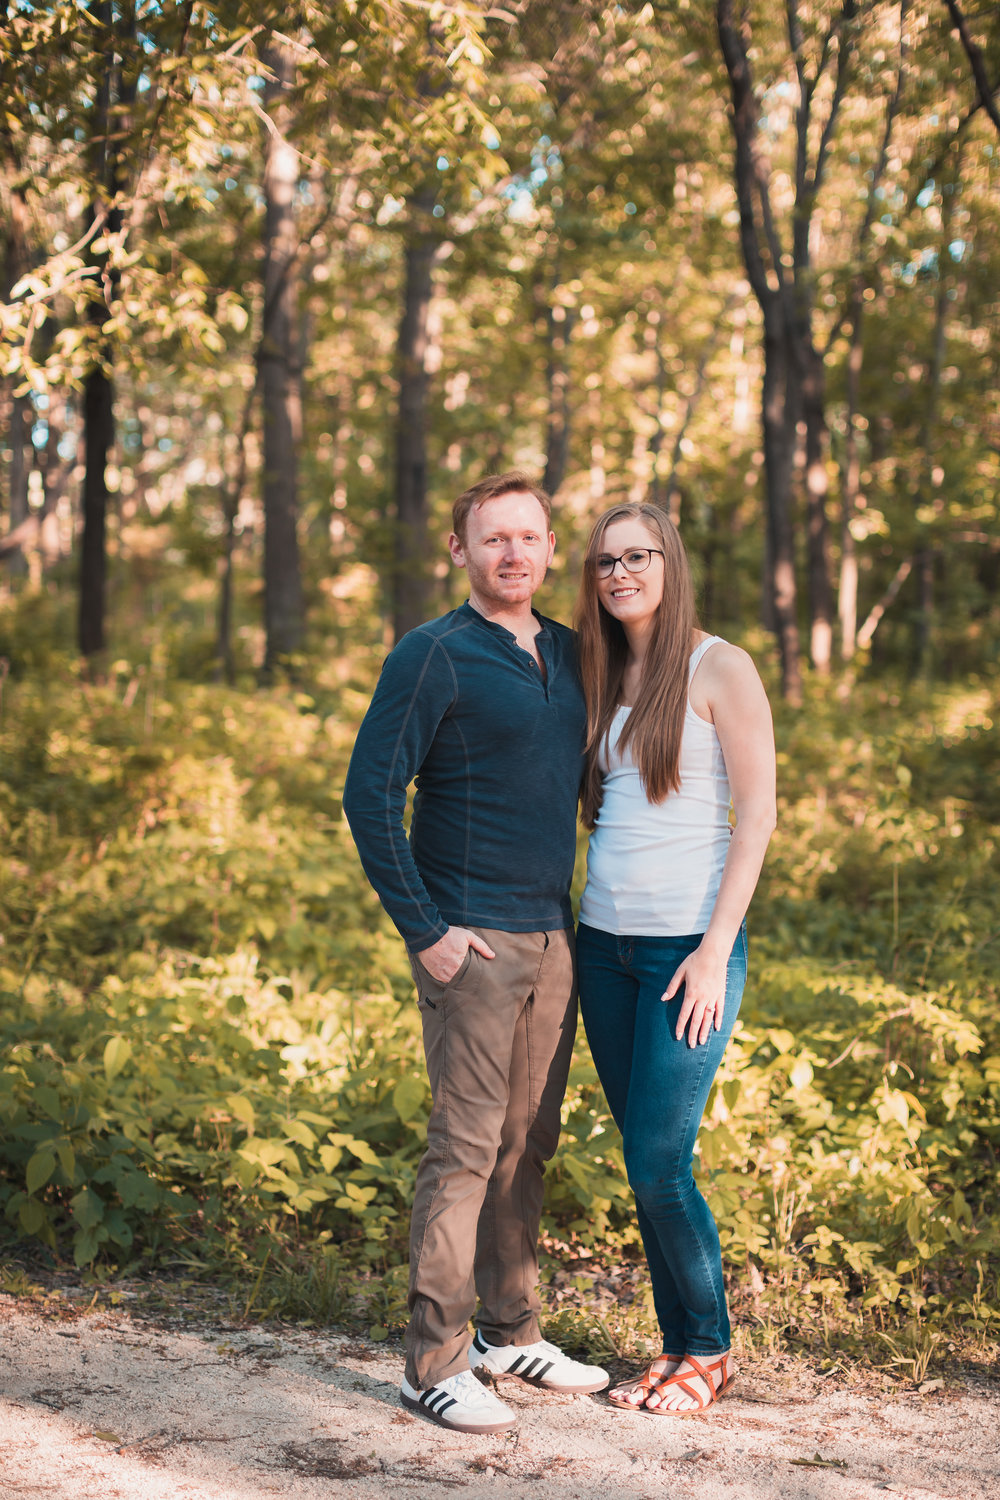 amanda+sean_engagement_20180603_02.jpg